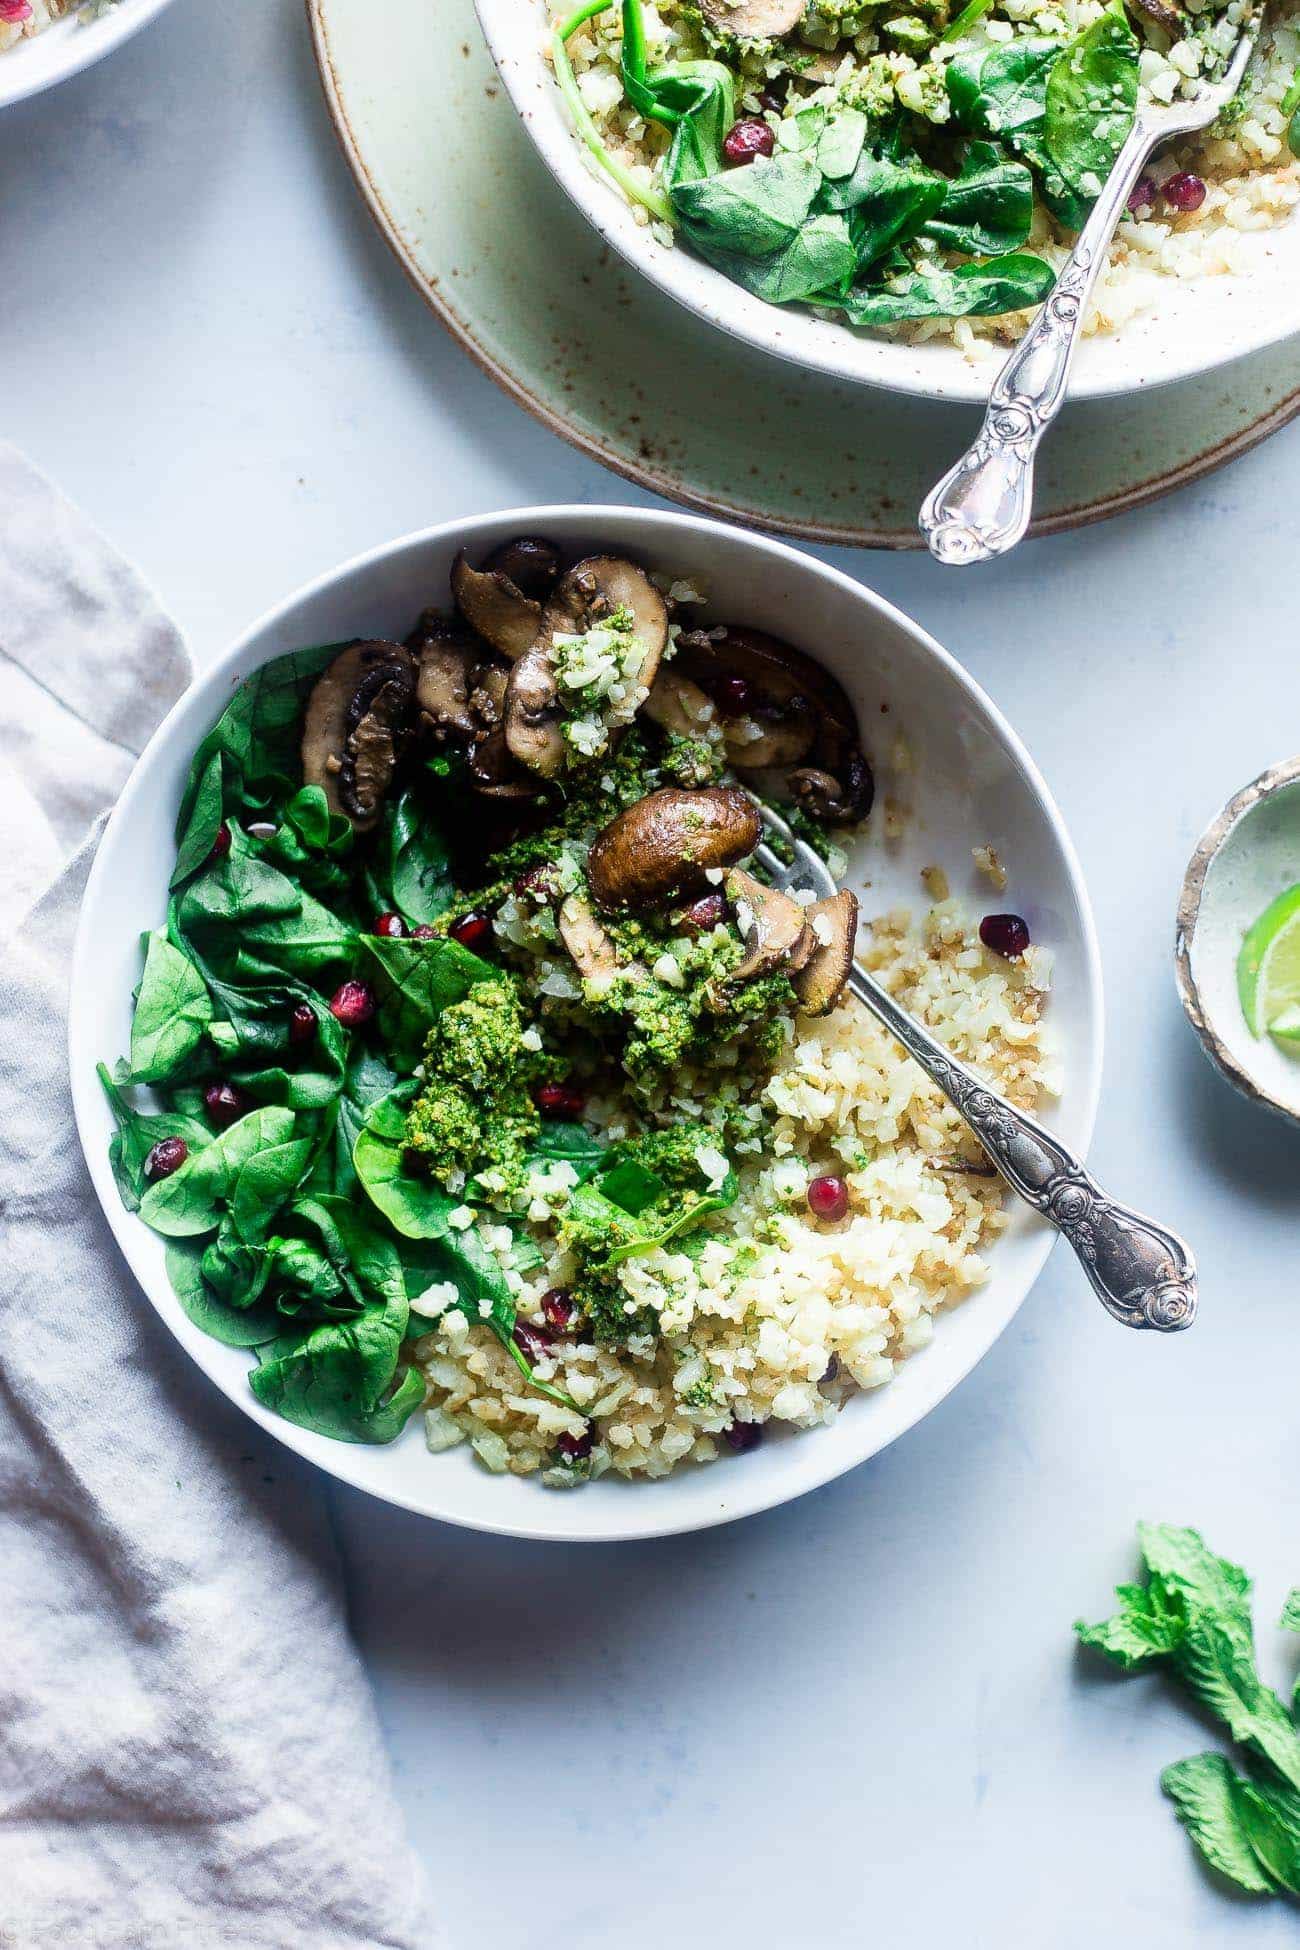 Vegan Detox Cauliflower Bowls - These low carb bowls are packed with veggies and a delicious almond pesto! They're a whole30 compliant, vegan and paleo friendly meal that is only 200 calories! | Foodfaithfitness.com | @ FoodFaithFit